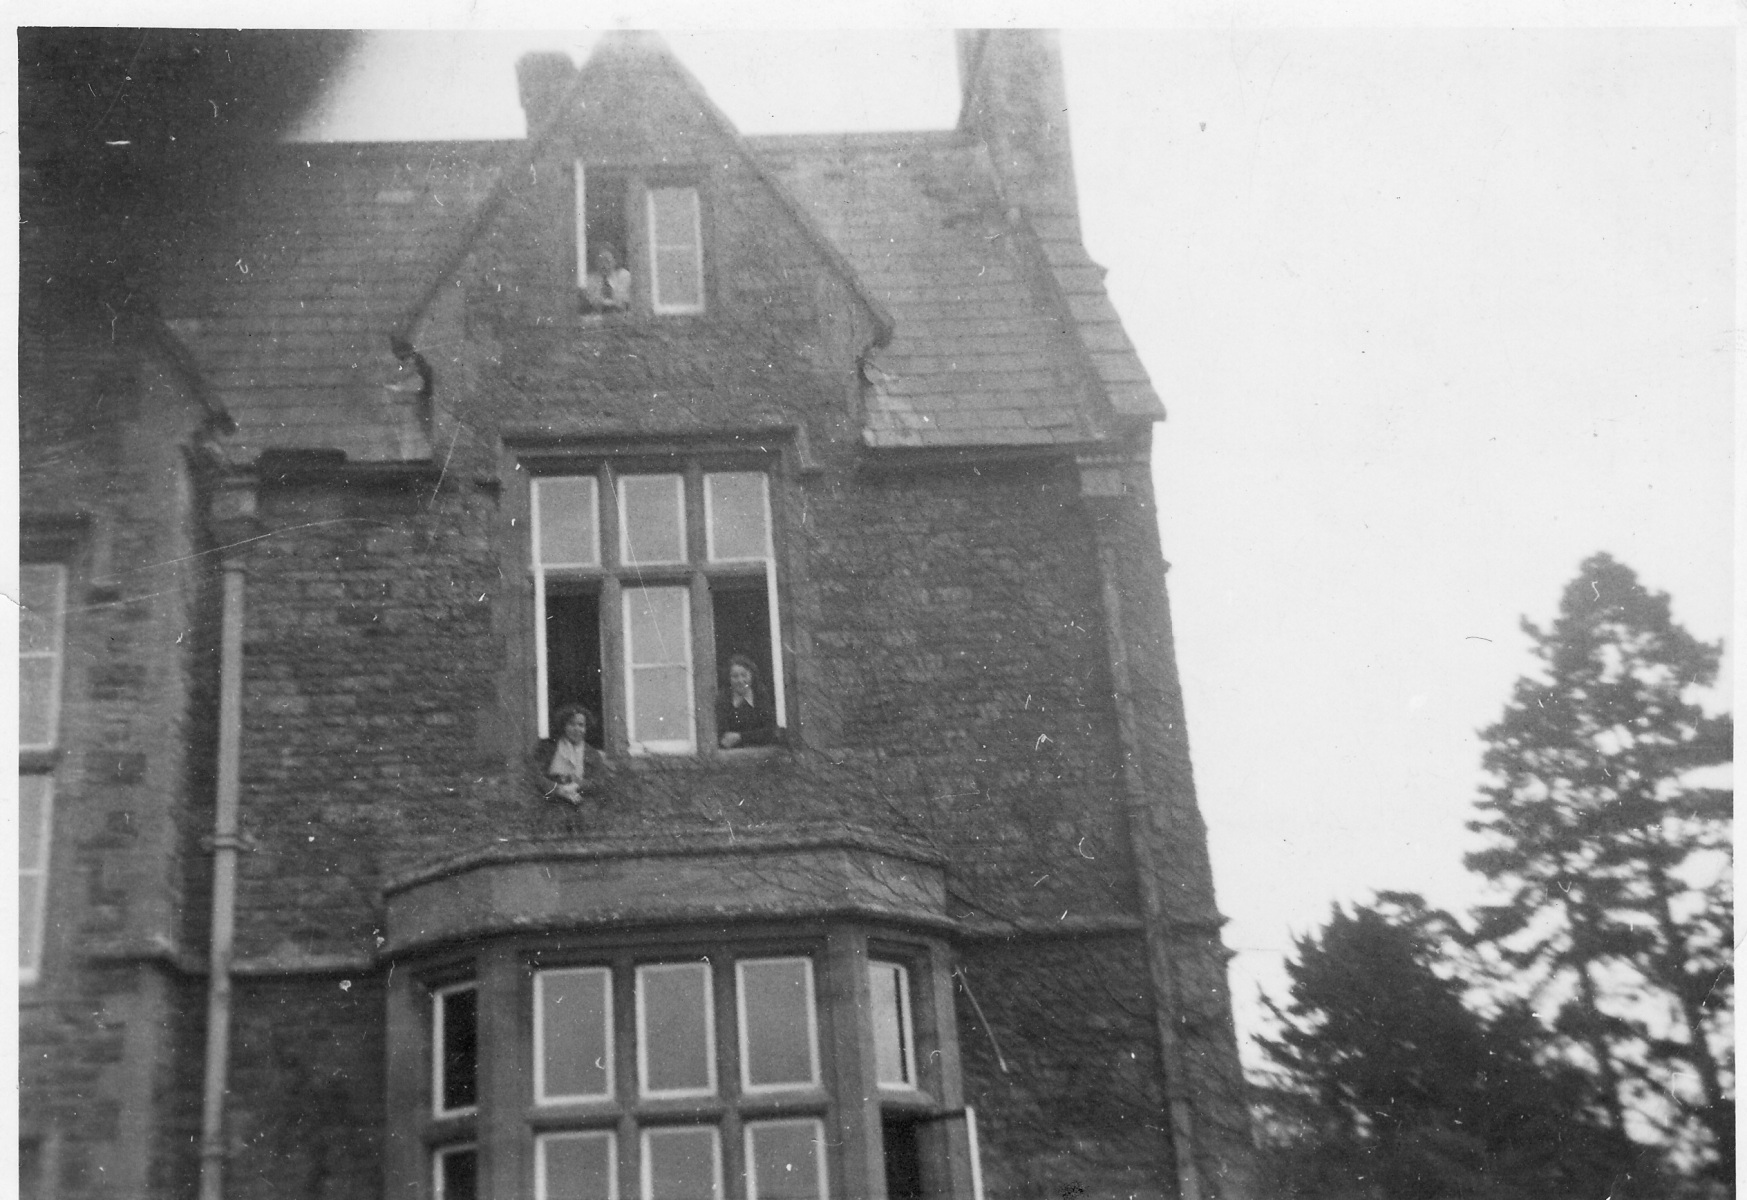 1942. Back view of Hostel, Westcote Barton Manor. Olive and my bedroom - top floor.